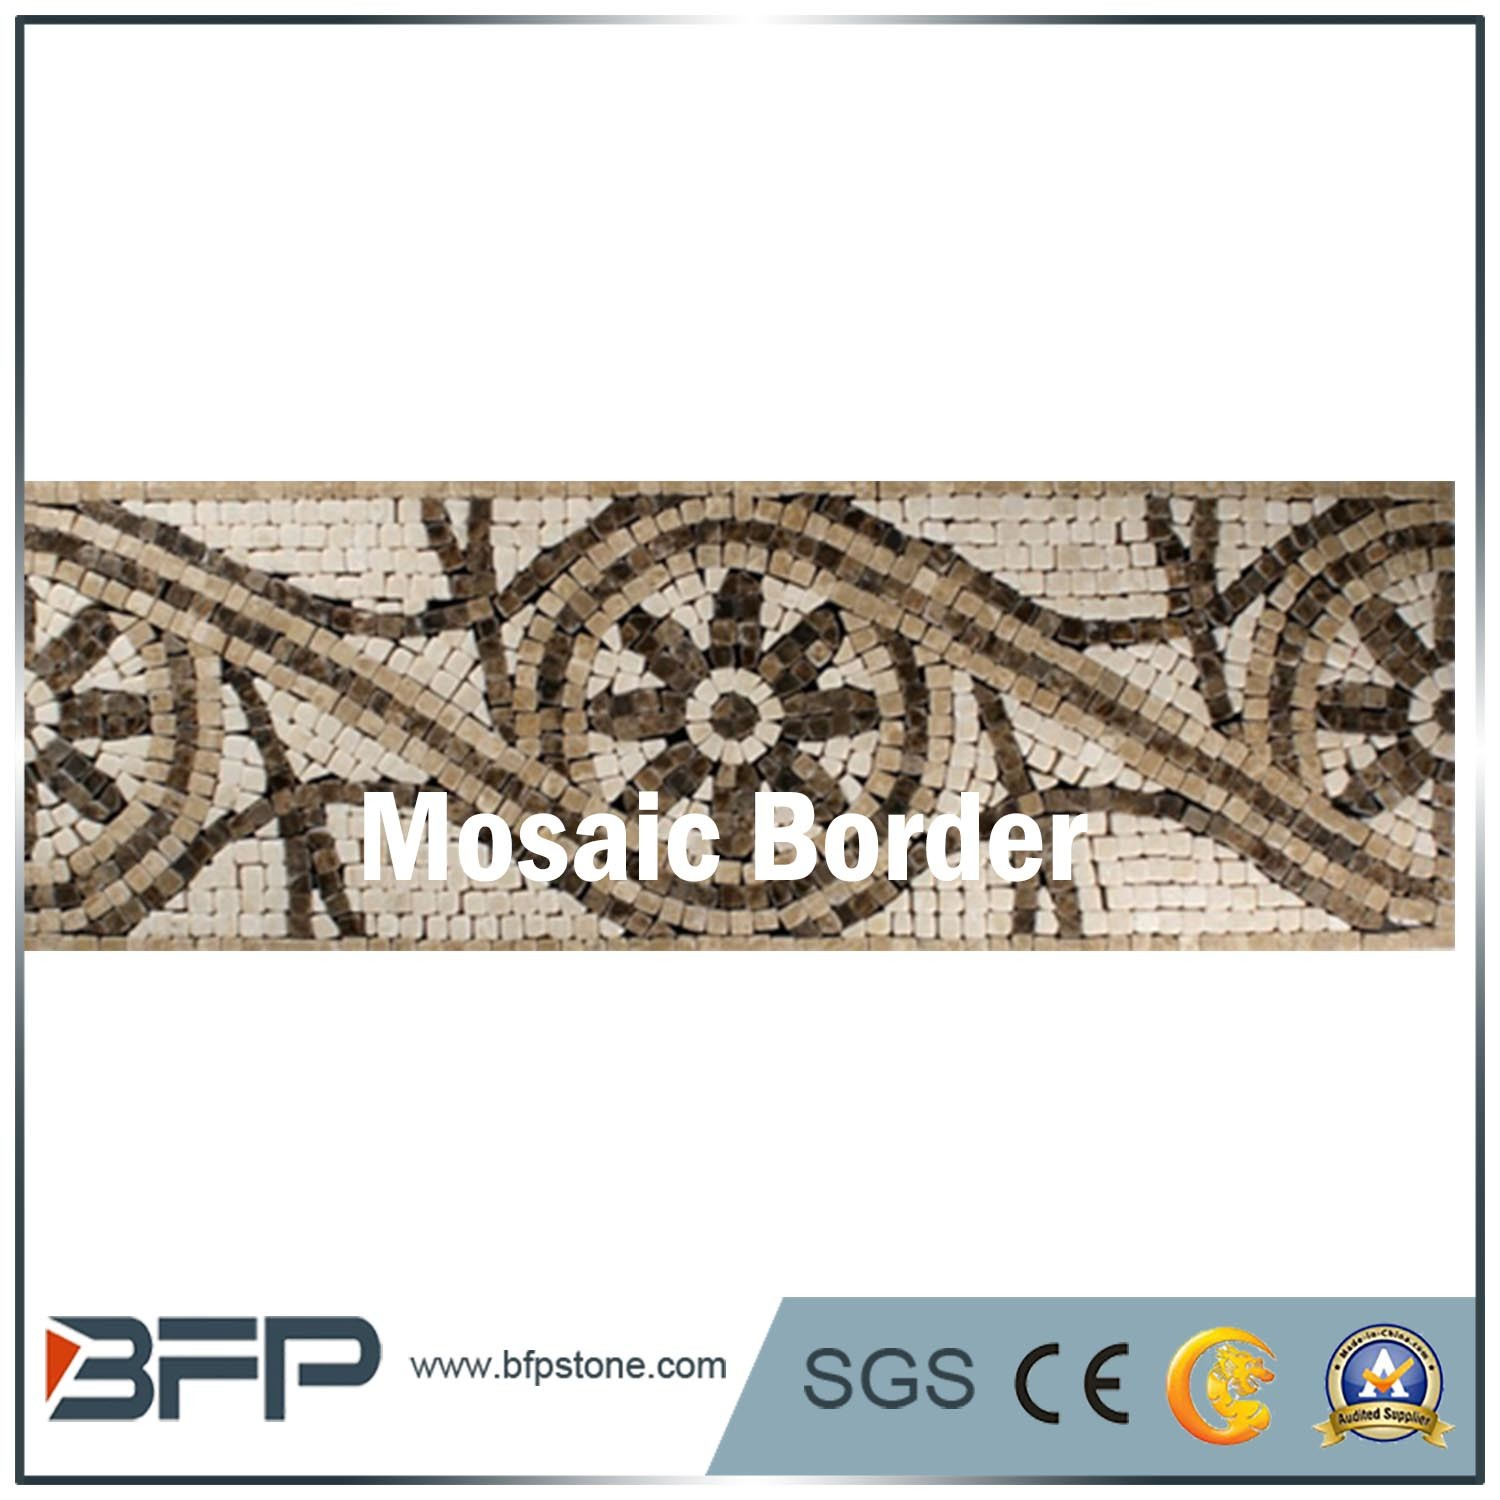 Modern Design New Style Black And White Marble Mosaic Border For Walls